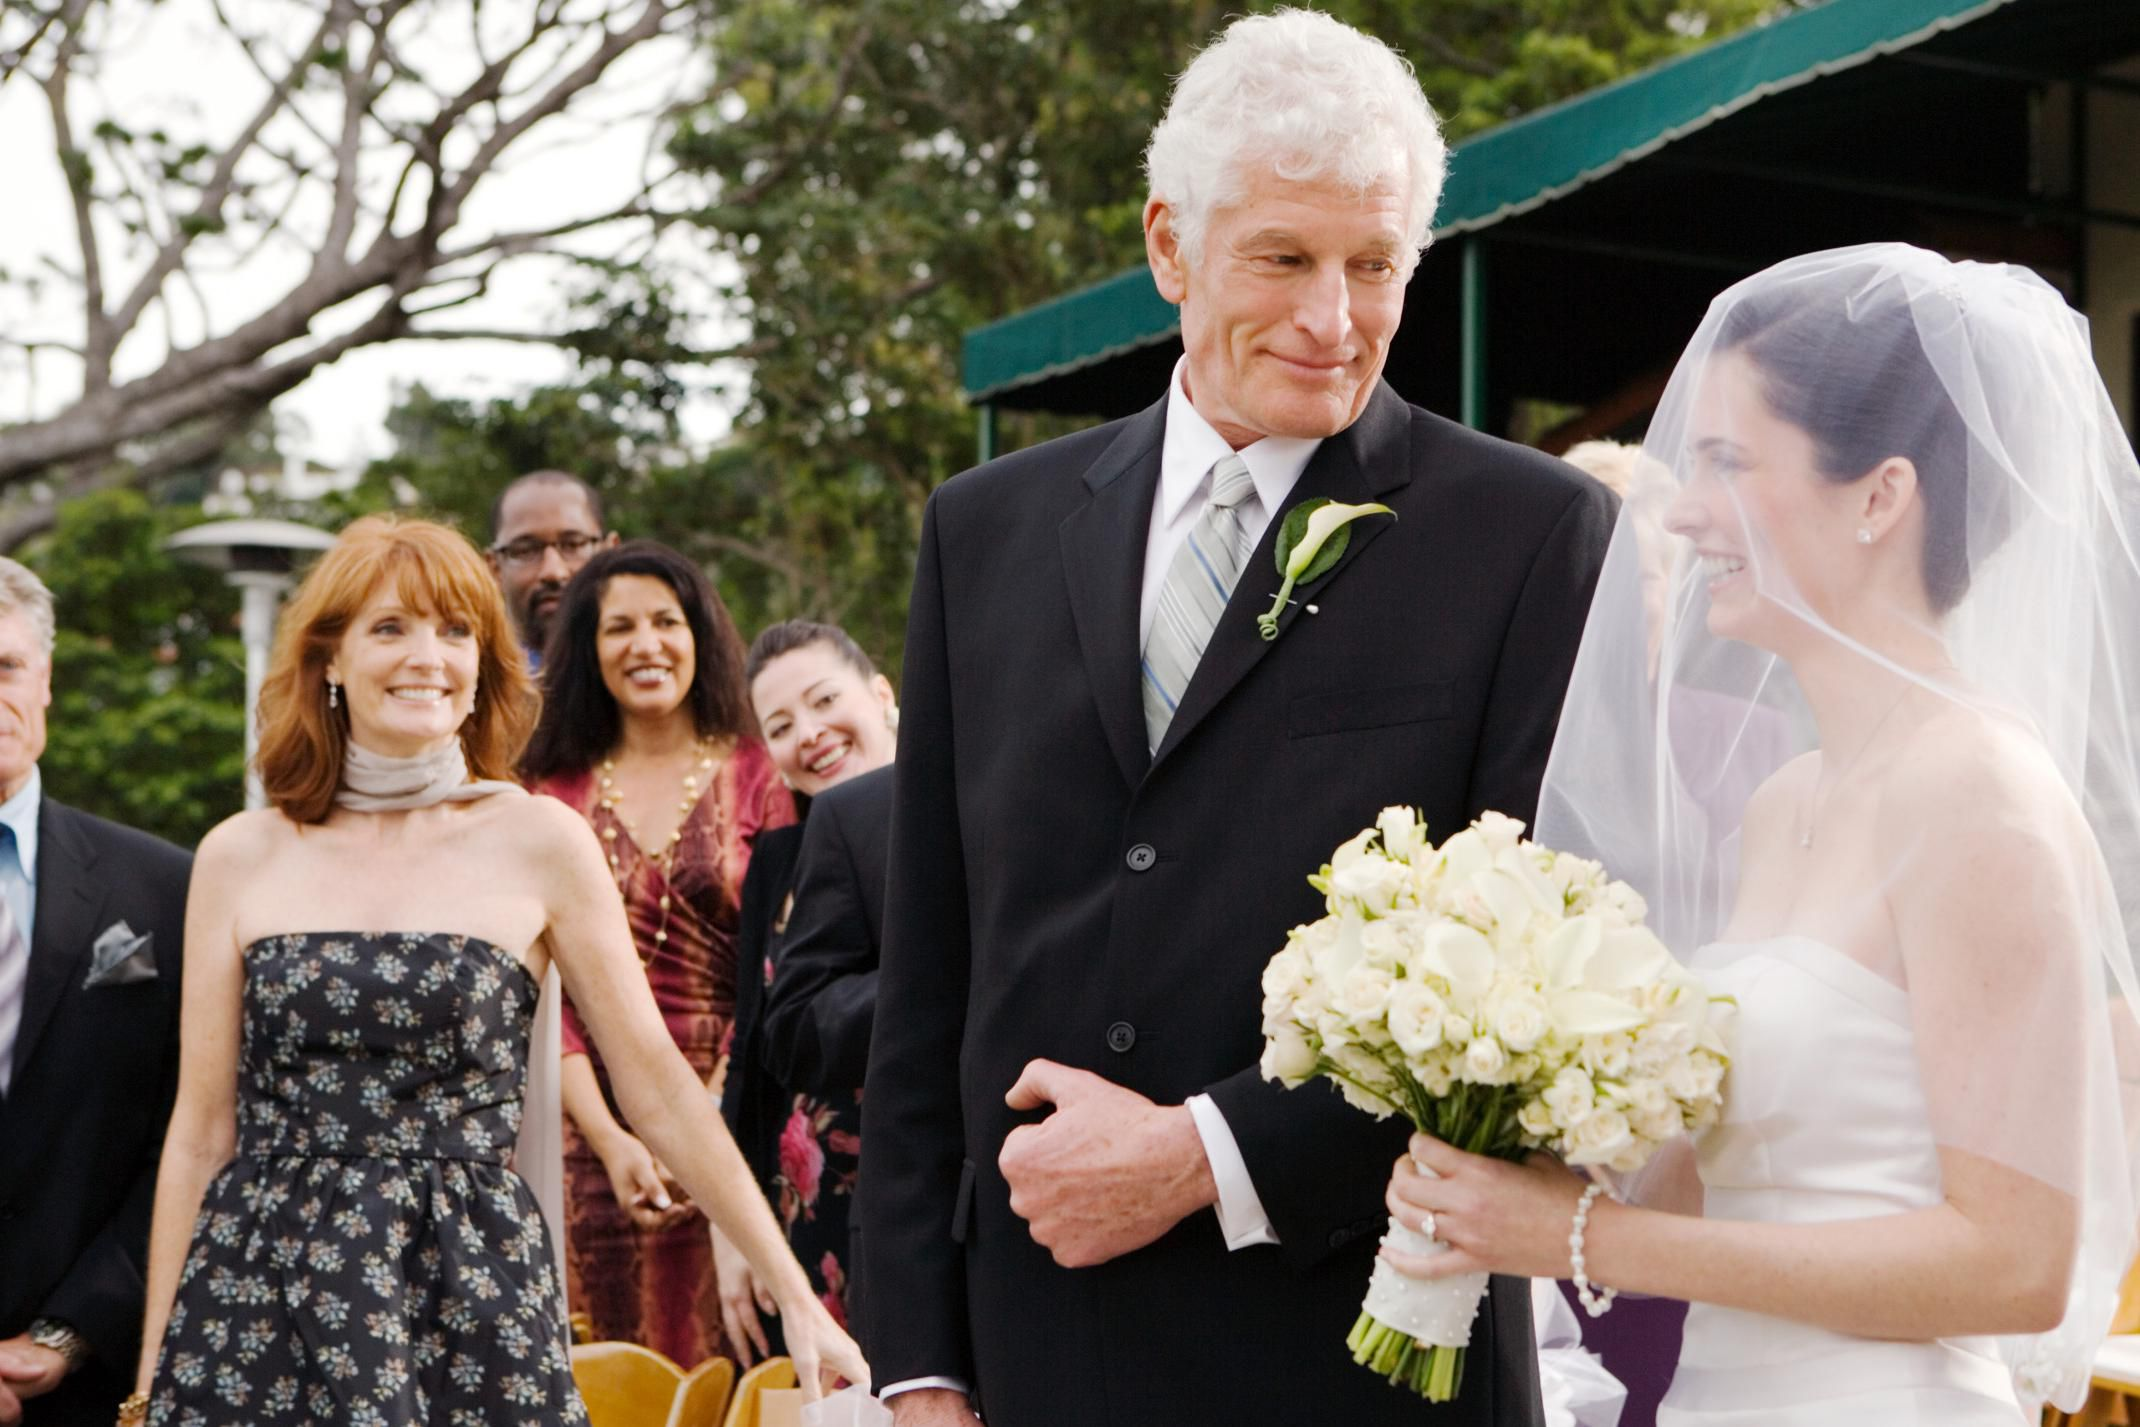 The Father's Role At A Daughter's Wedding Celebration